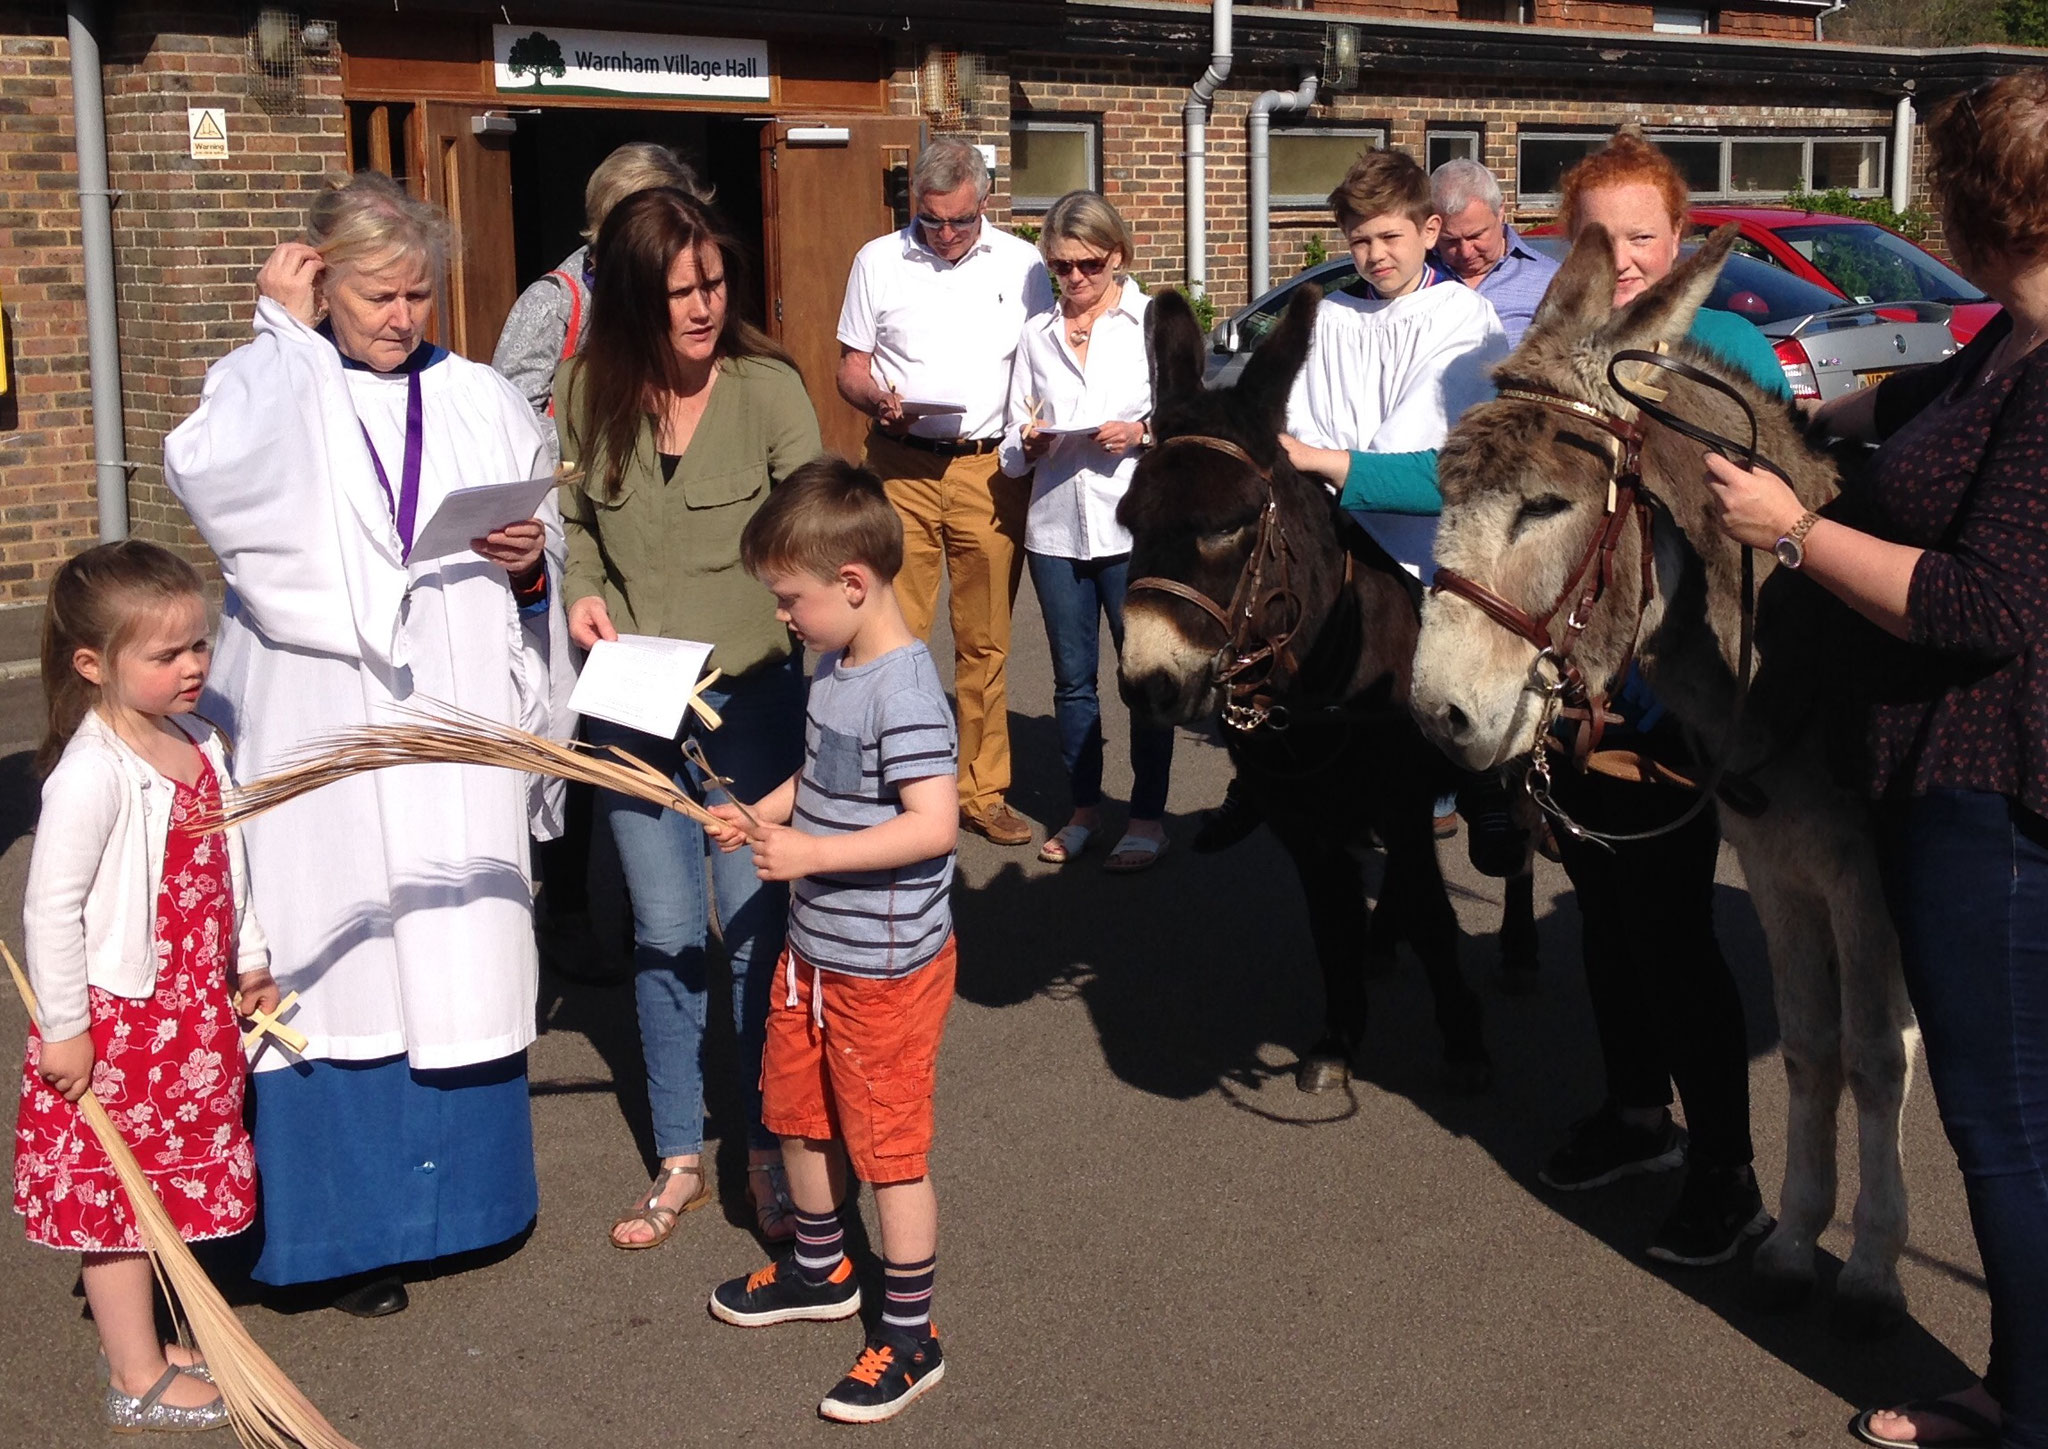 Getting ready to go